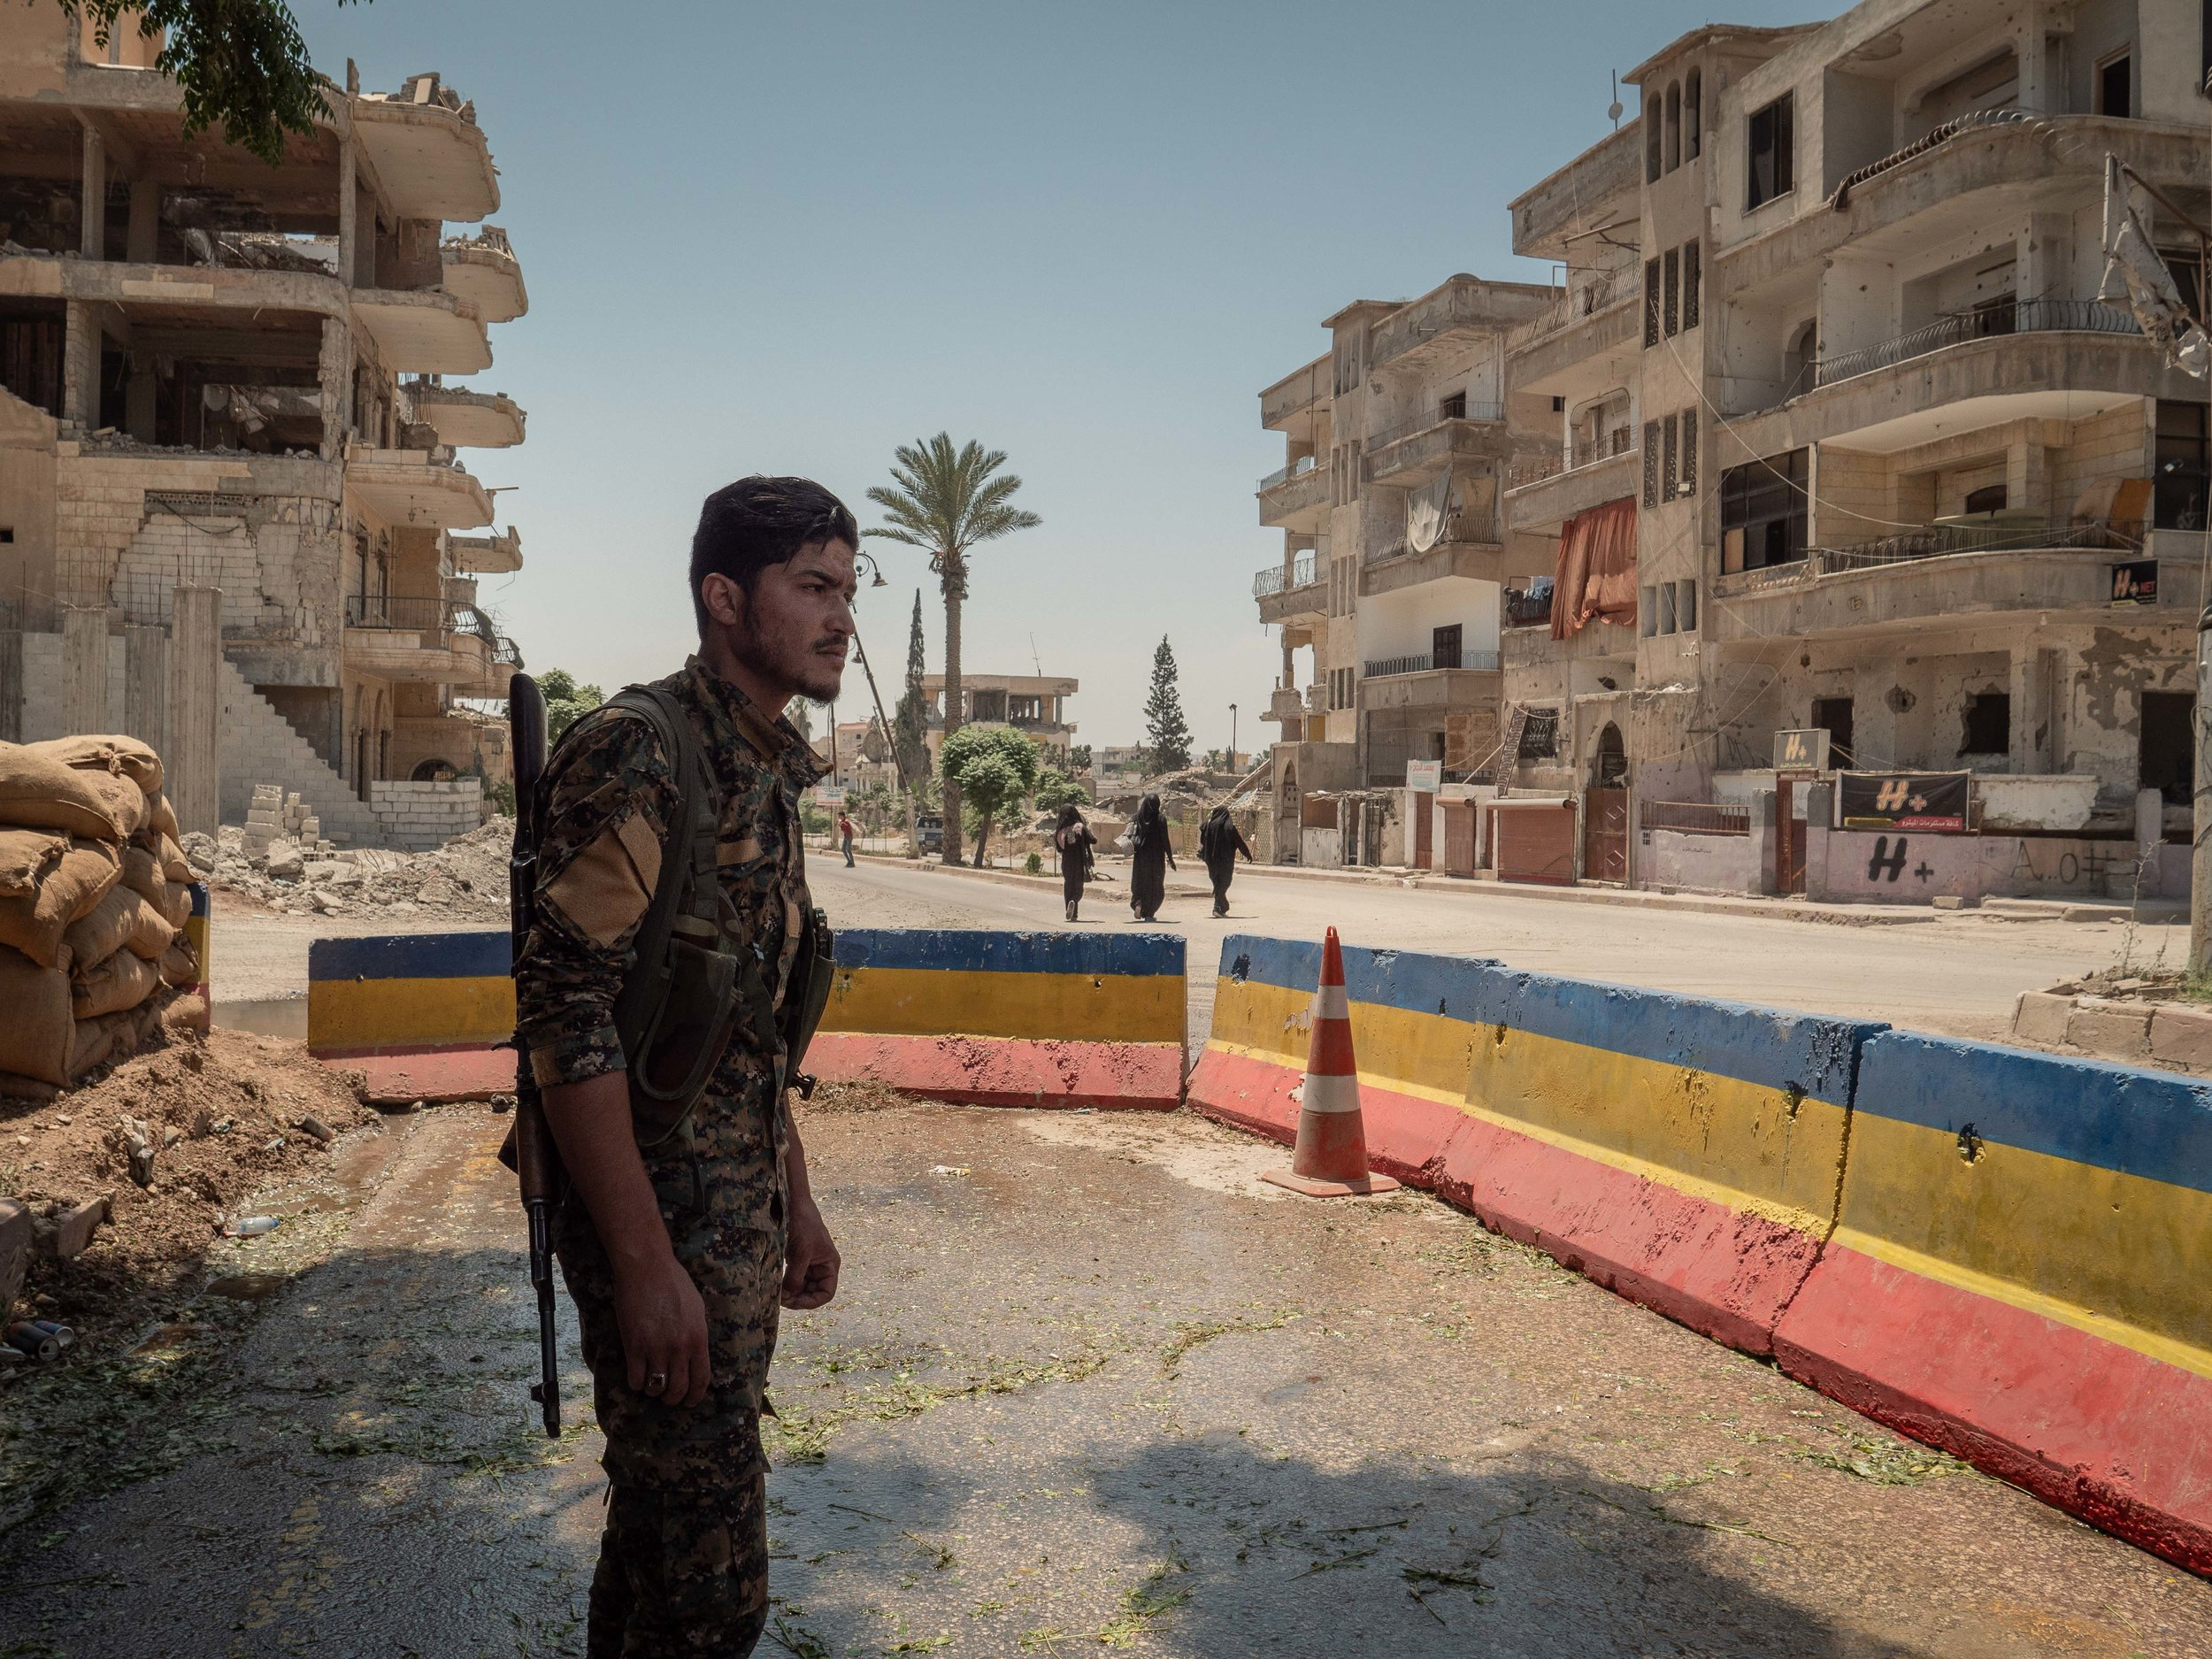 29/05/19, Raqqa, Syria - A member of the security forces patrols the headquarter in Raqqa near the site of a suicide attack.